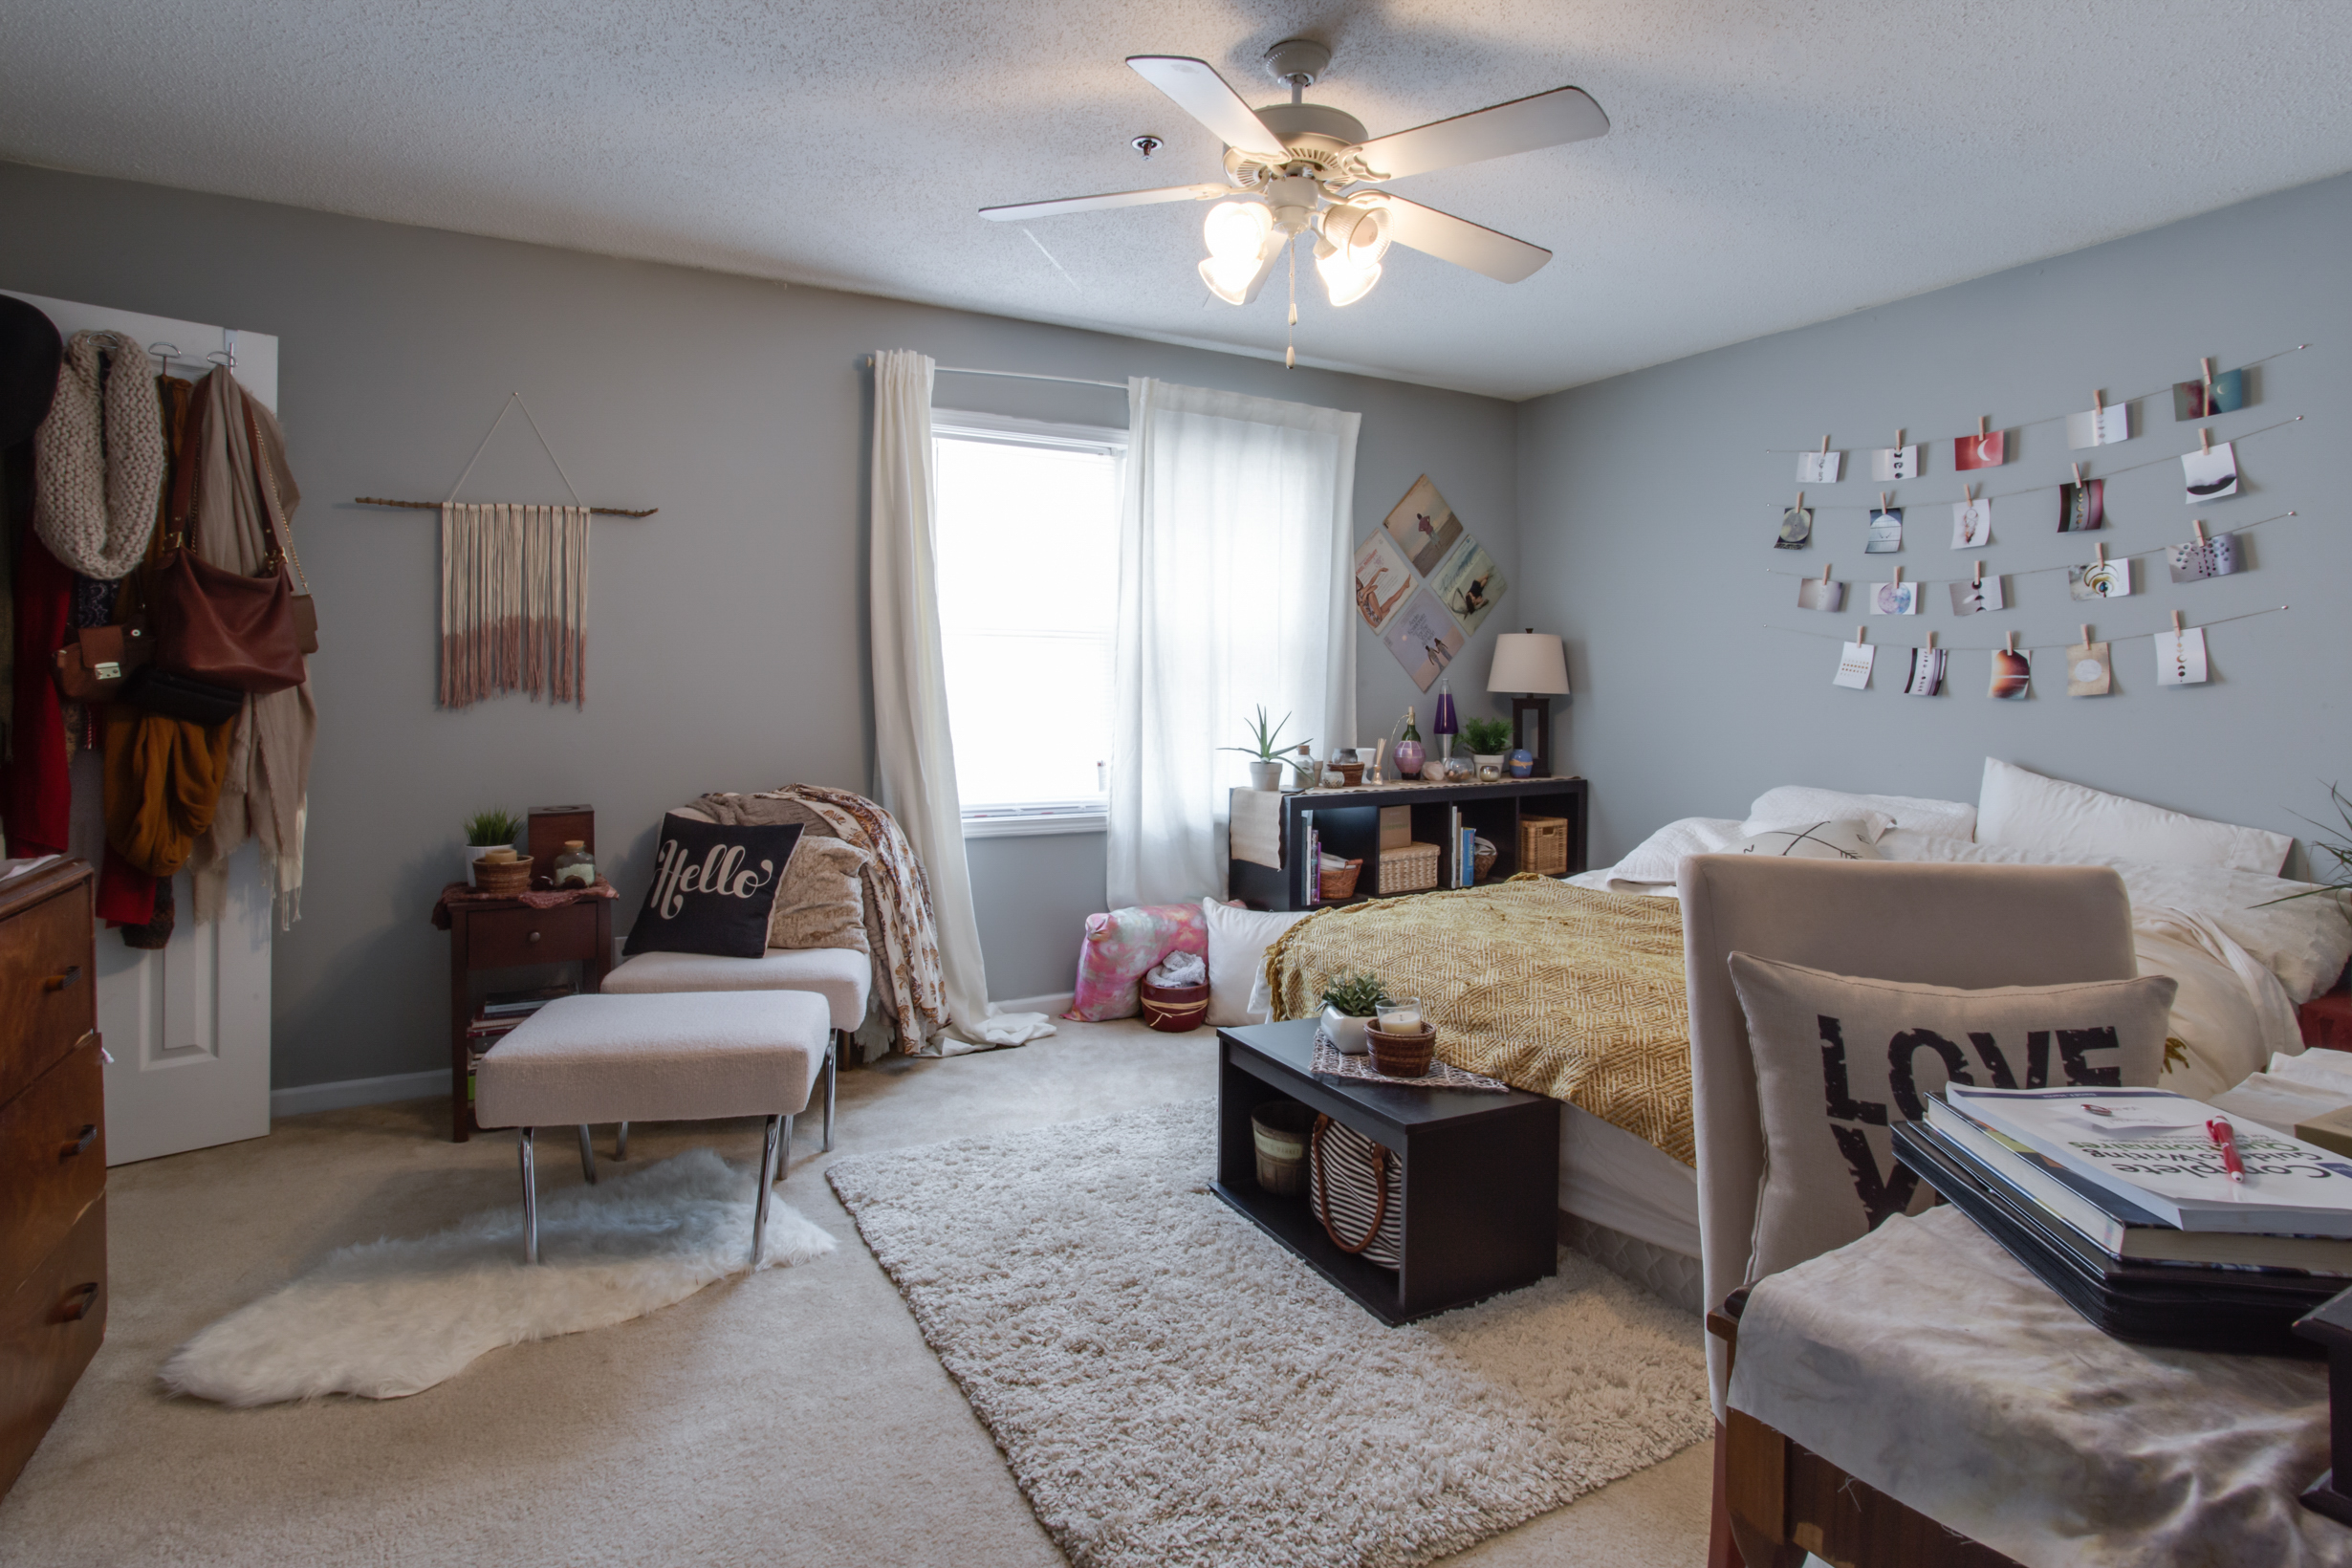 Whistlebury-Walk-Rent-Athens-37